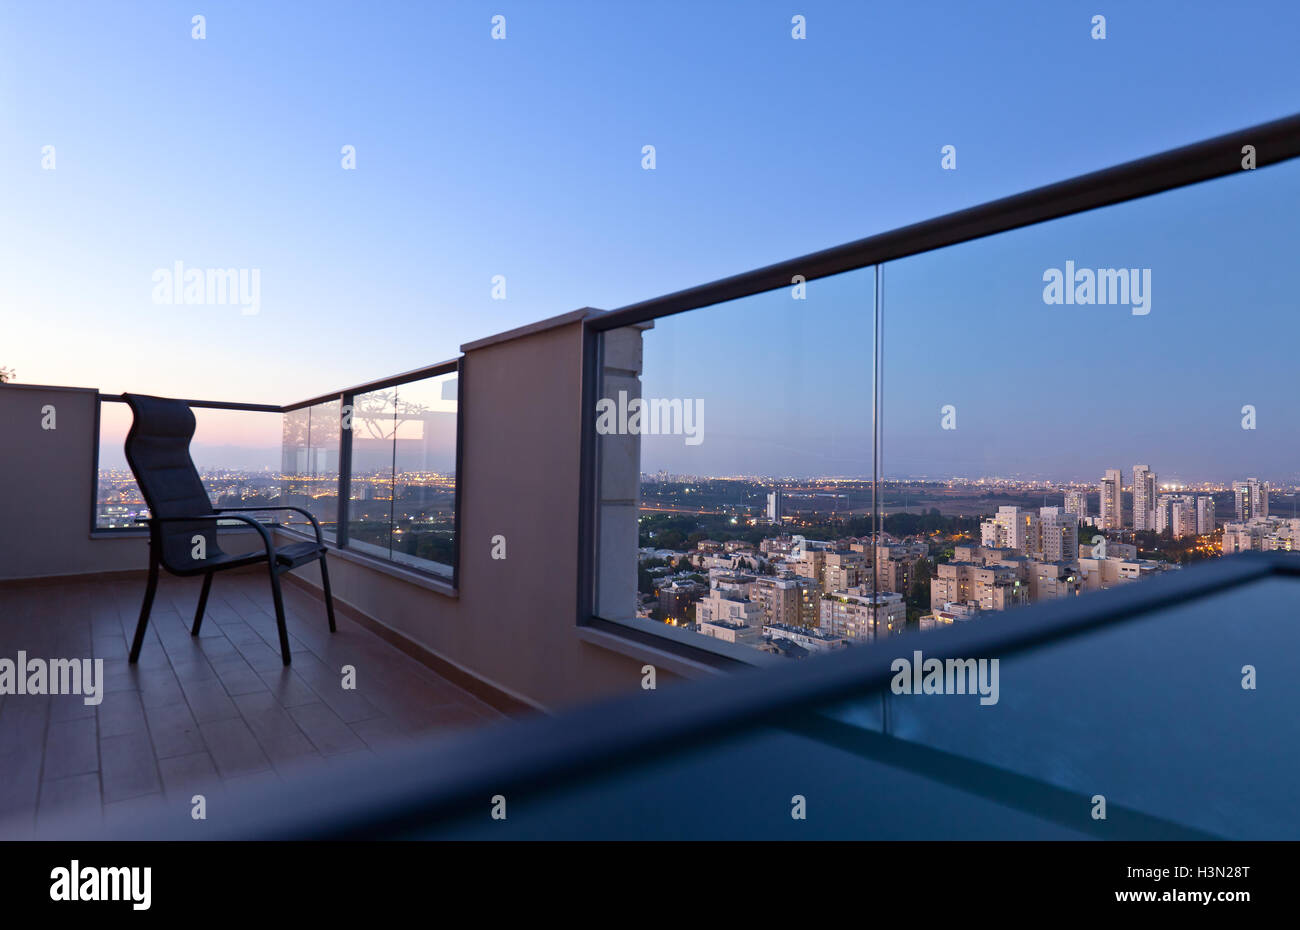 High end balcony in downtown of modern city - Stock Image